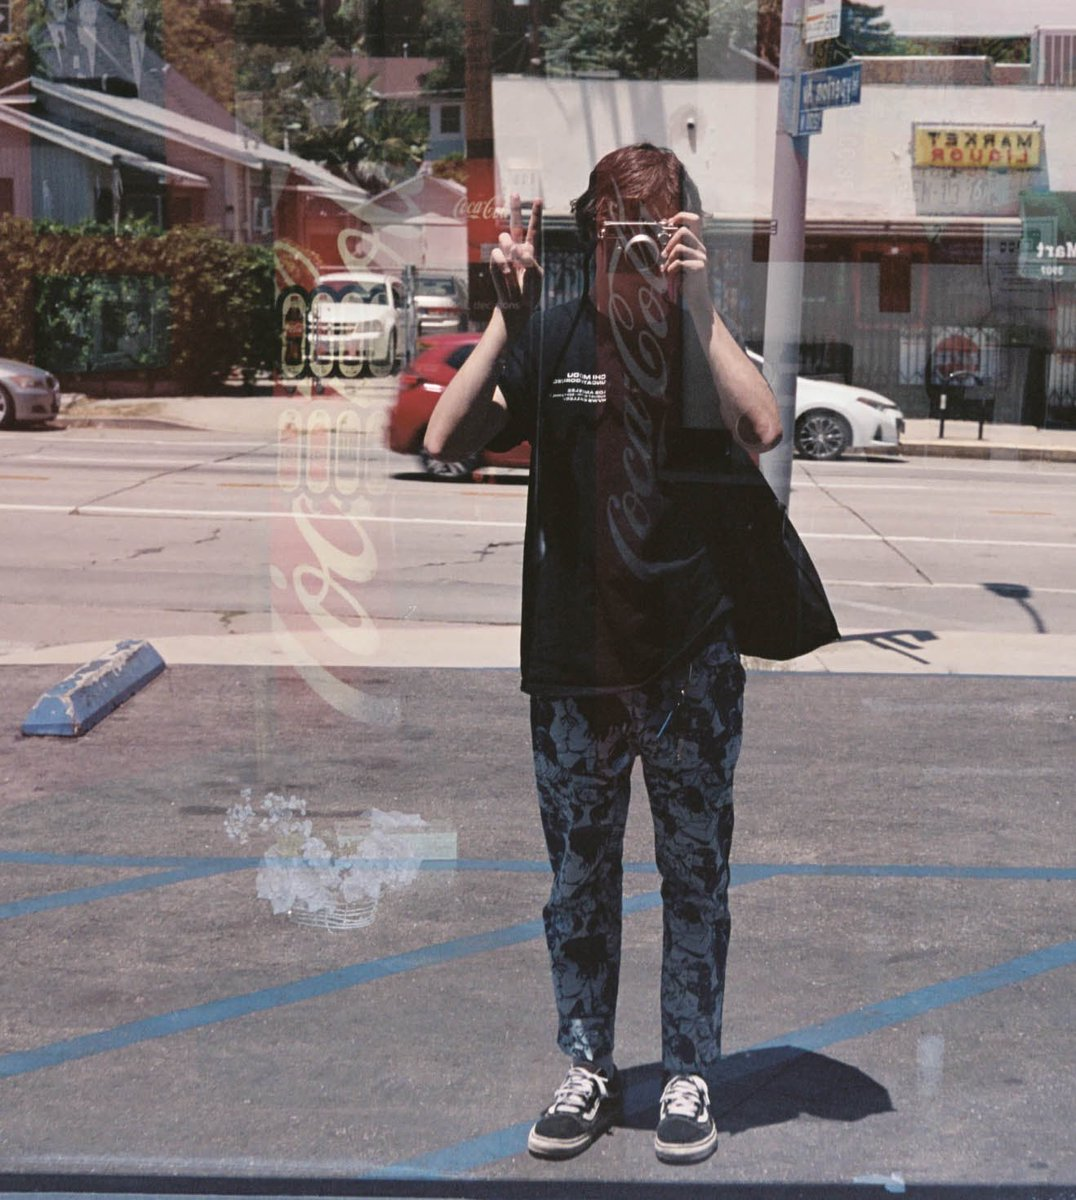 Casual day in LA #35mm pic.twitter.com/S0zs00bNYY